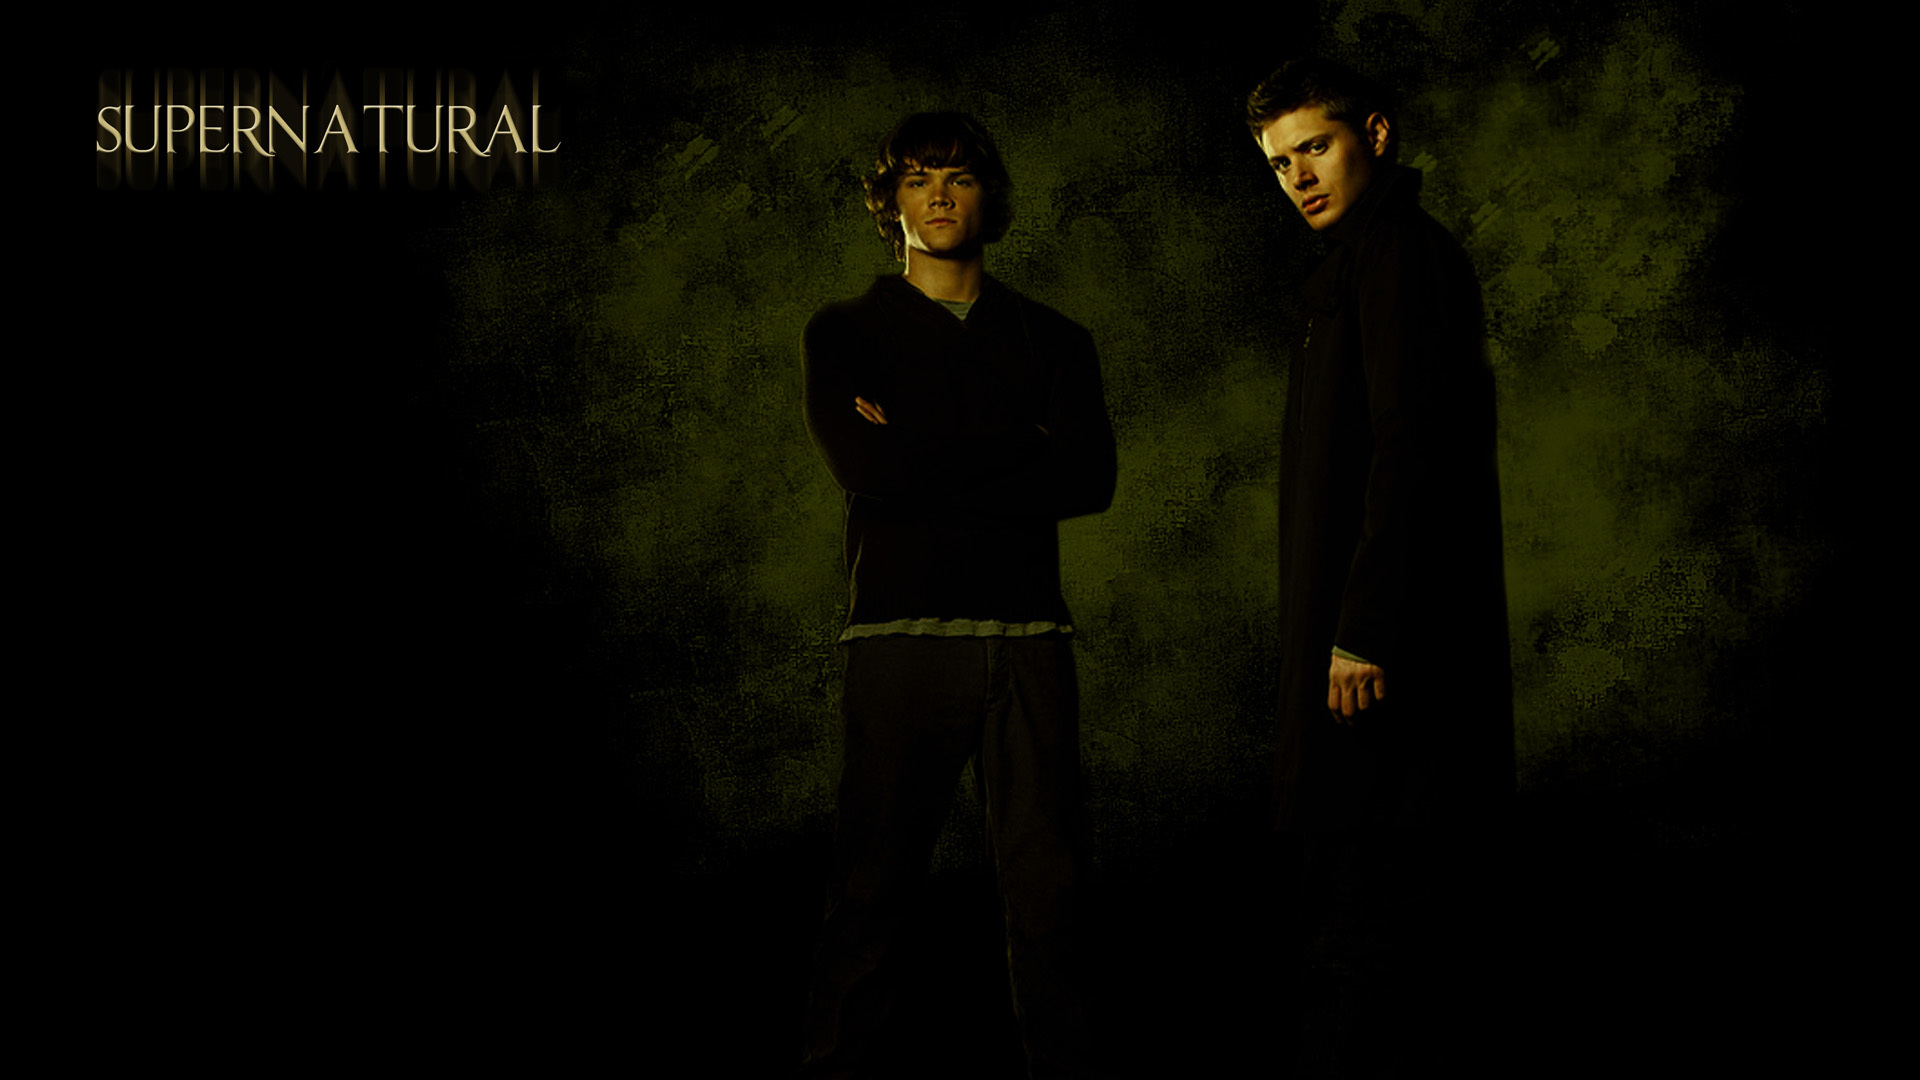 Supernatural Laptop Wallpaper